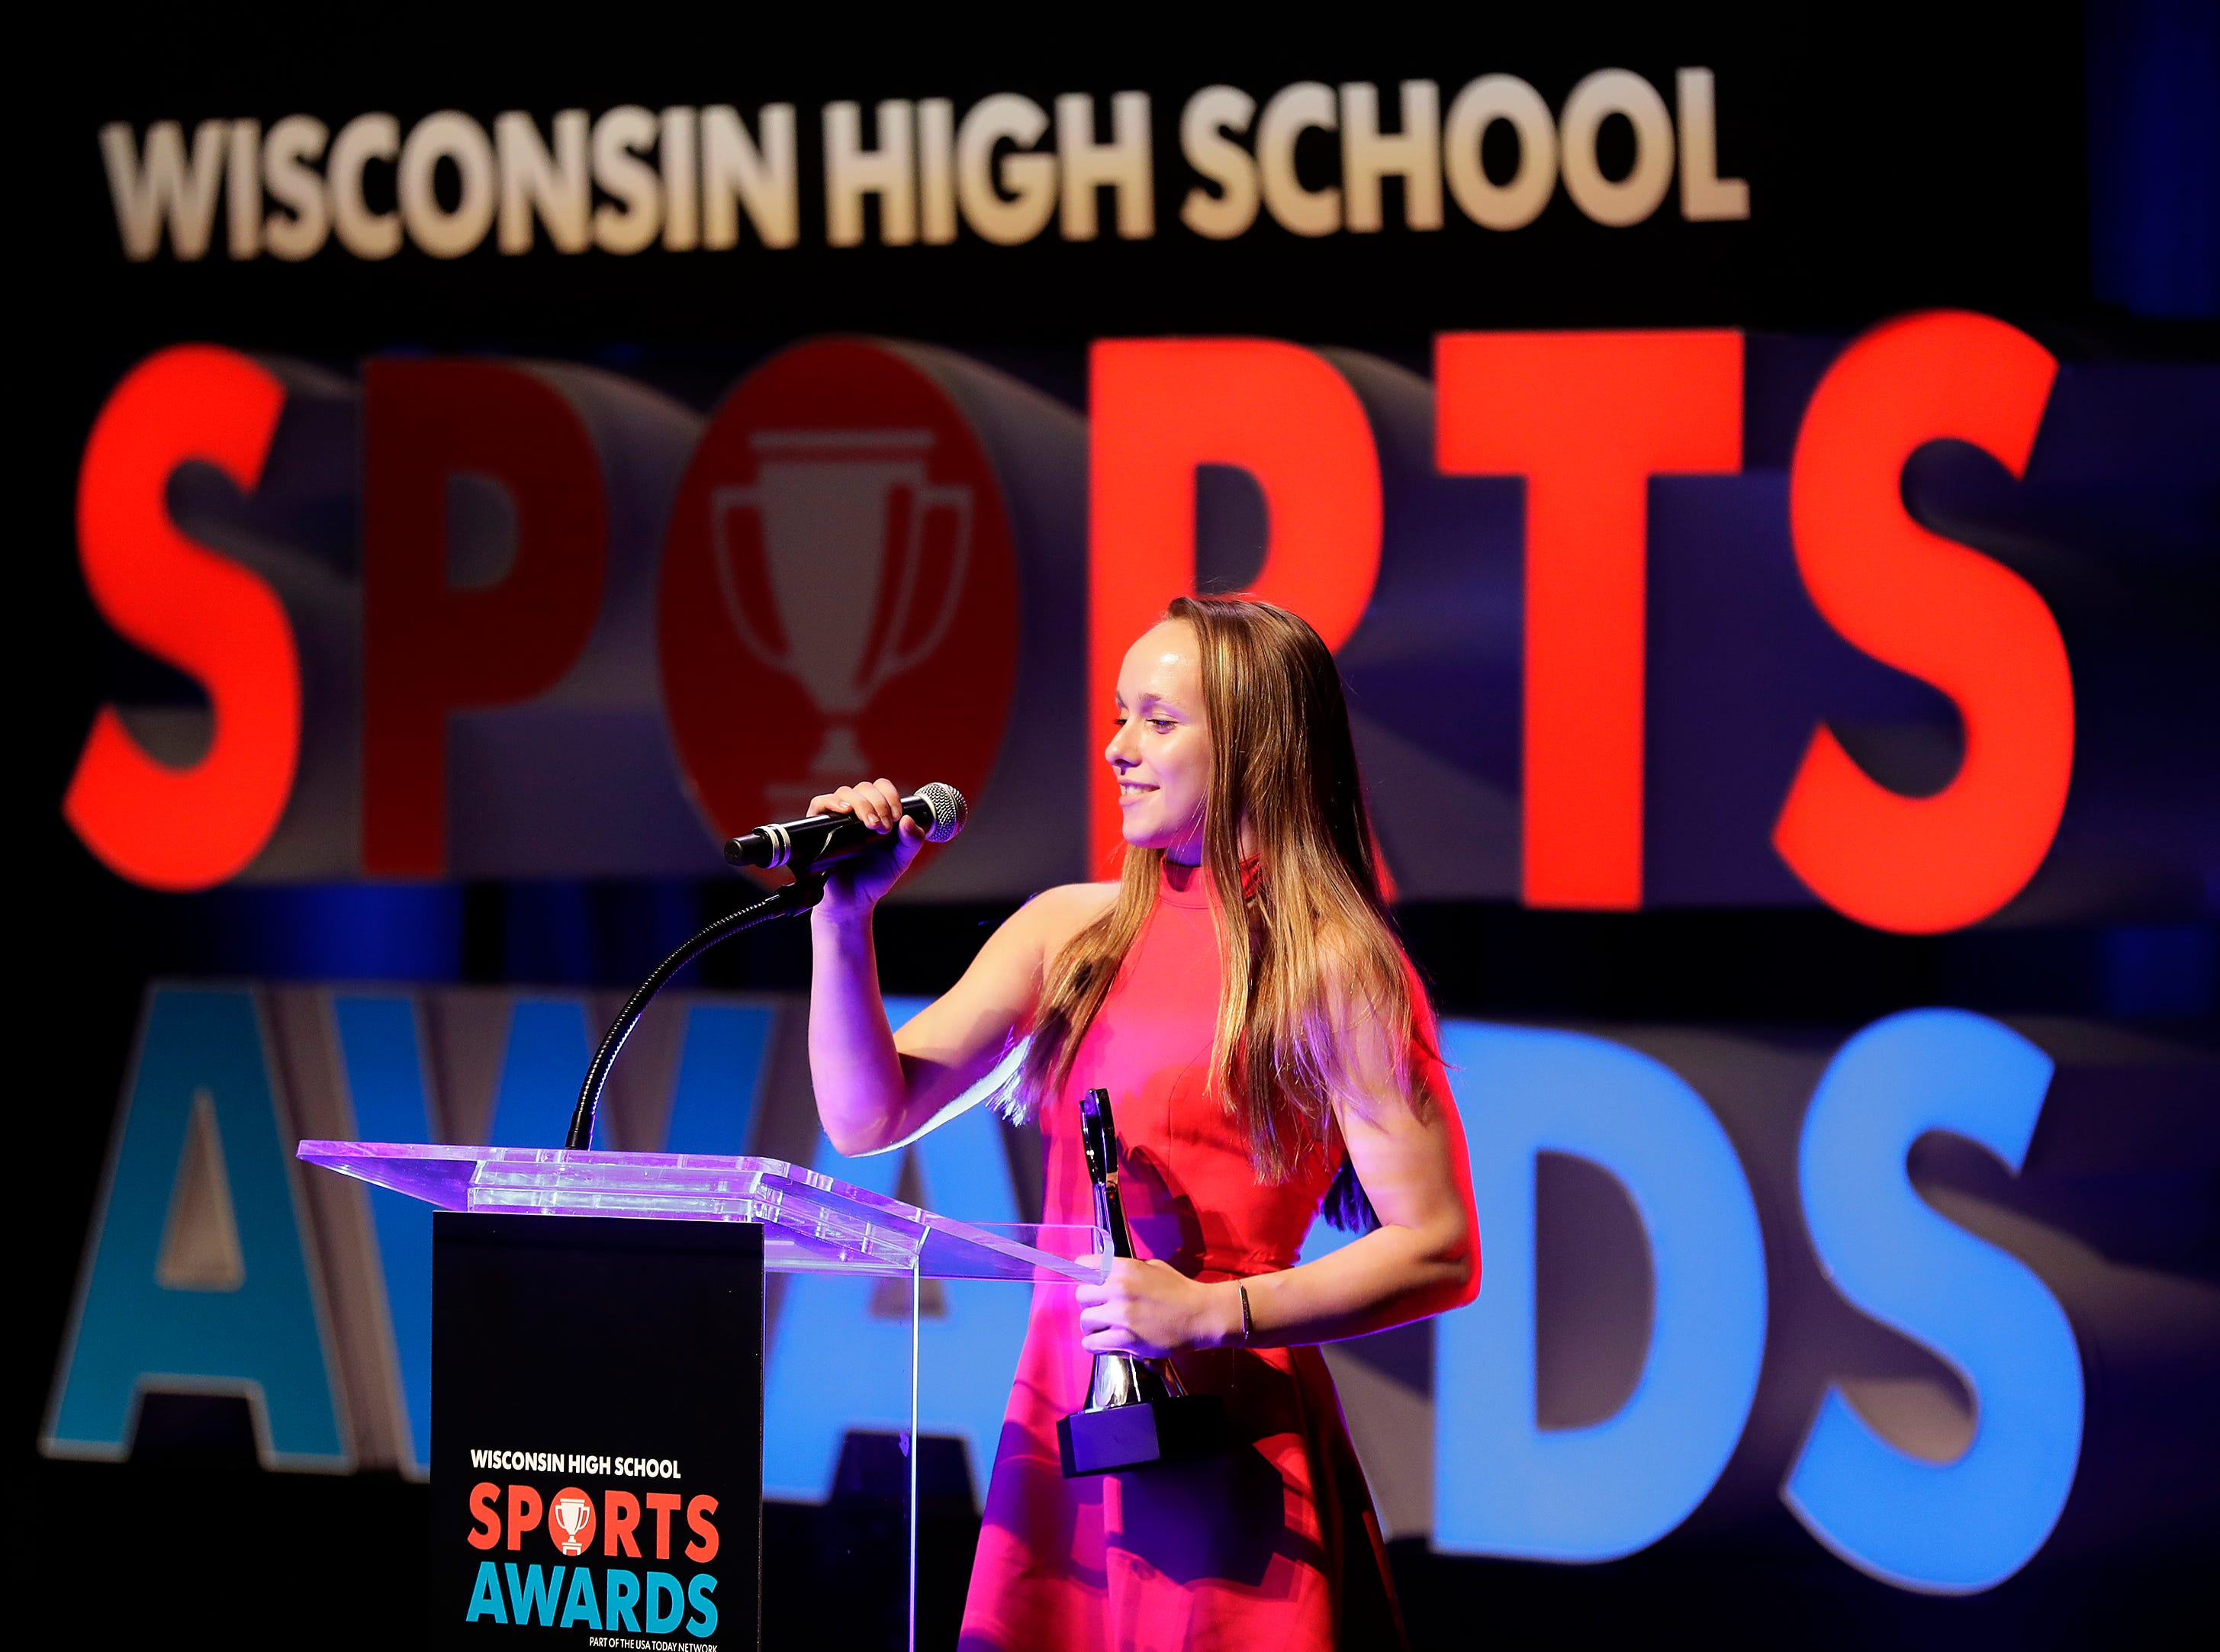 Gymnast of the Year, Marshfield's Gracie Holland during the Wisconsin High School Sports Awards show at the Fox Cities Performing Arts Center on Wednesday, May 8, 2019, in Appleton, Wis. Olympic champion Michael Phelps was the guest speaker. The annual event was presented by USA TODAY NETWORK-Wisconsin.  Wm. Glasheen/USA TODAY NETWORK-Wisconsin.